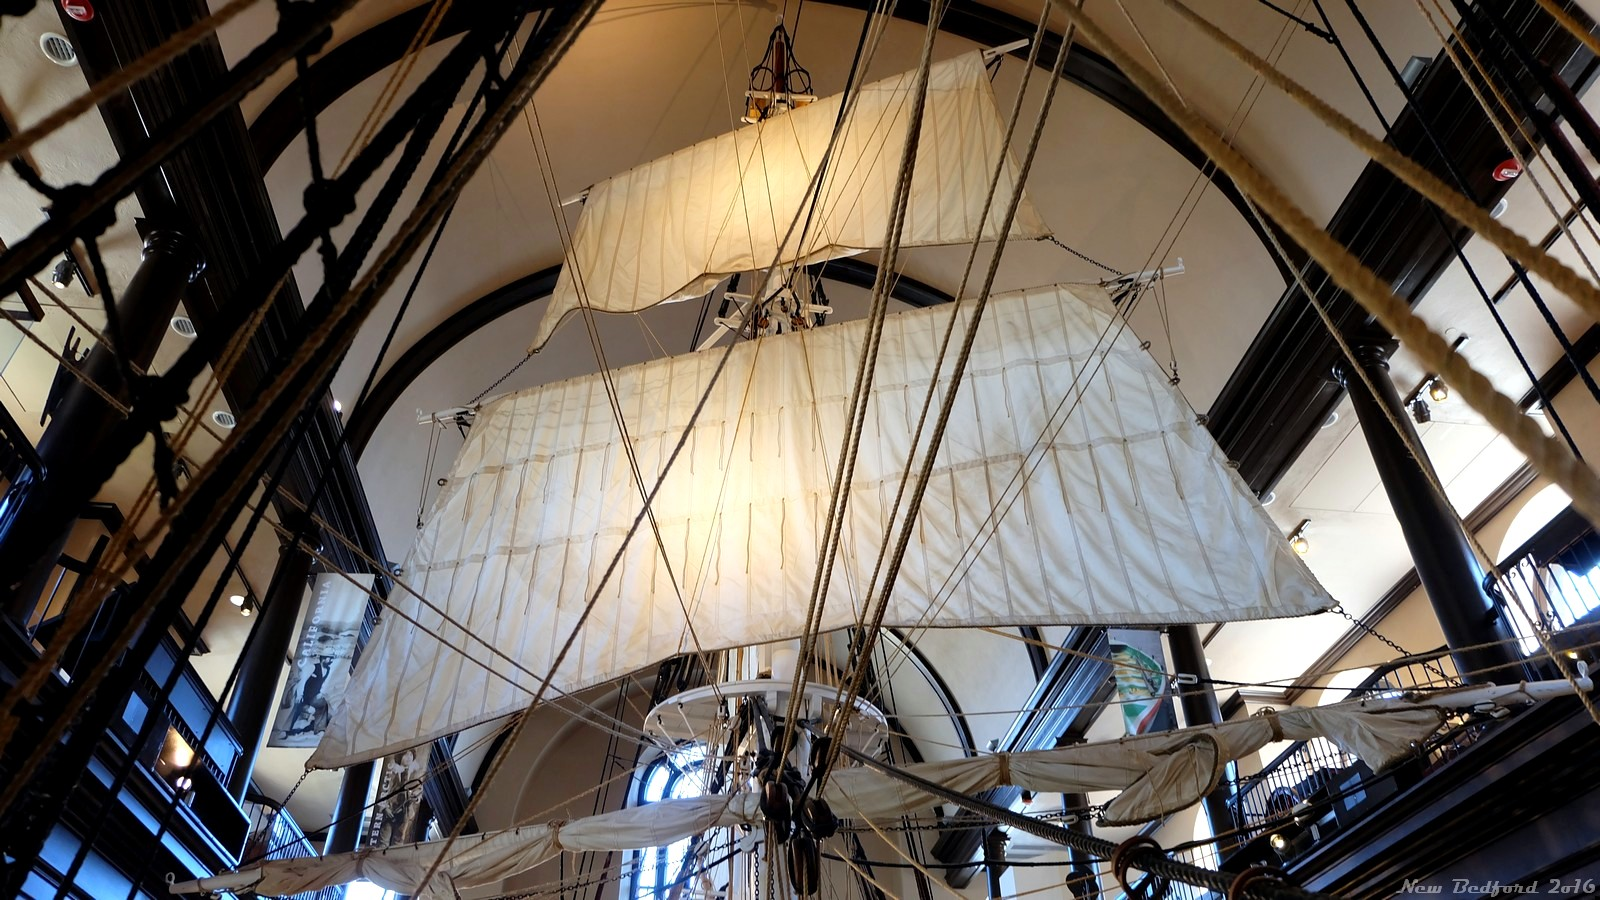 The New Bedford Whaling Museum, MA, USA